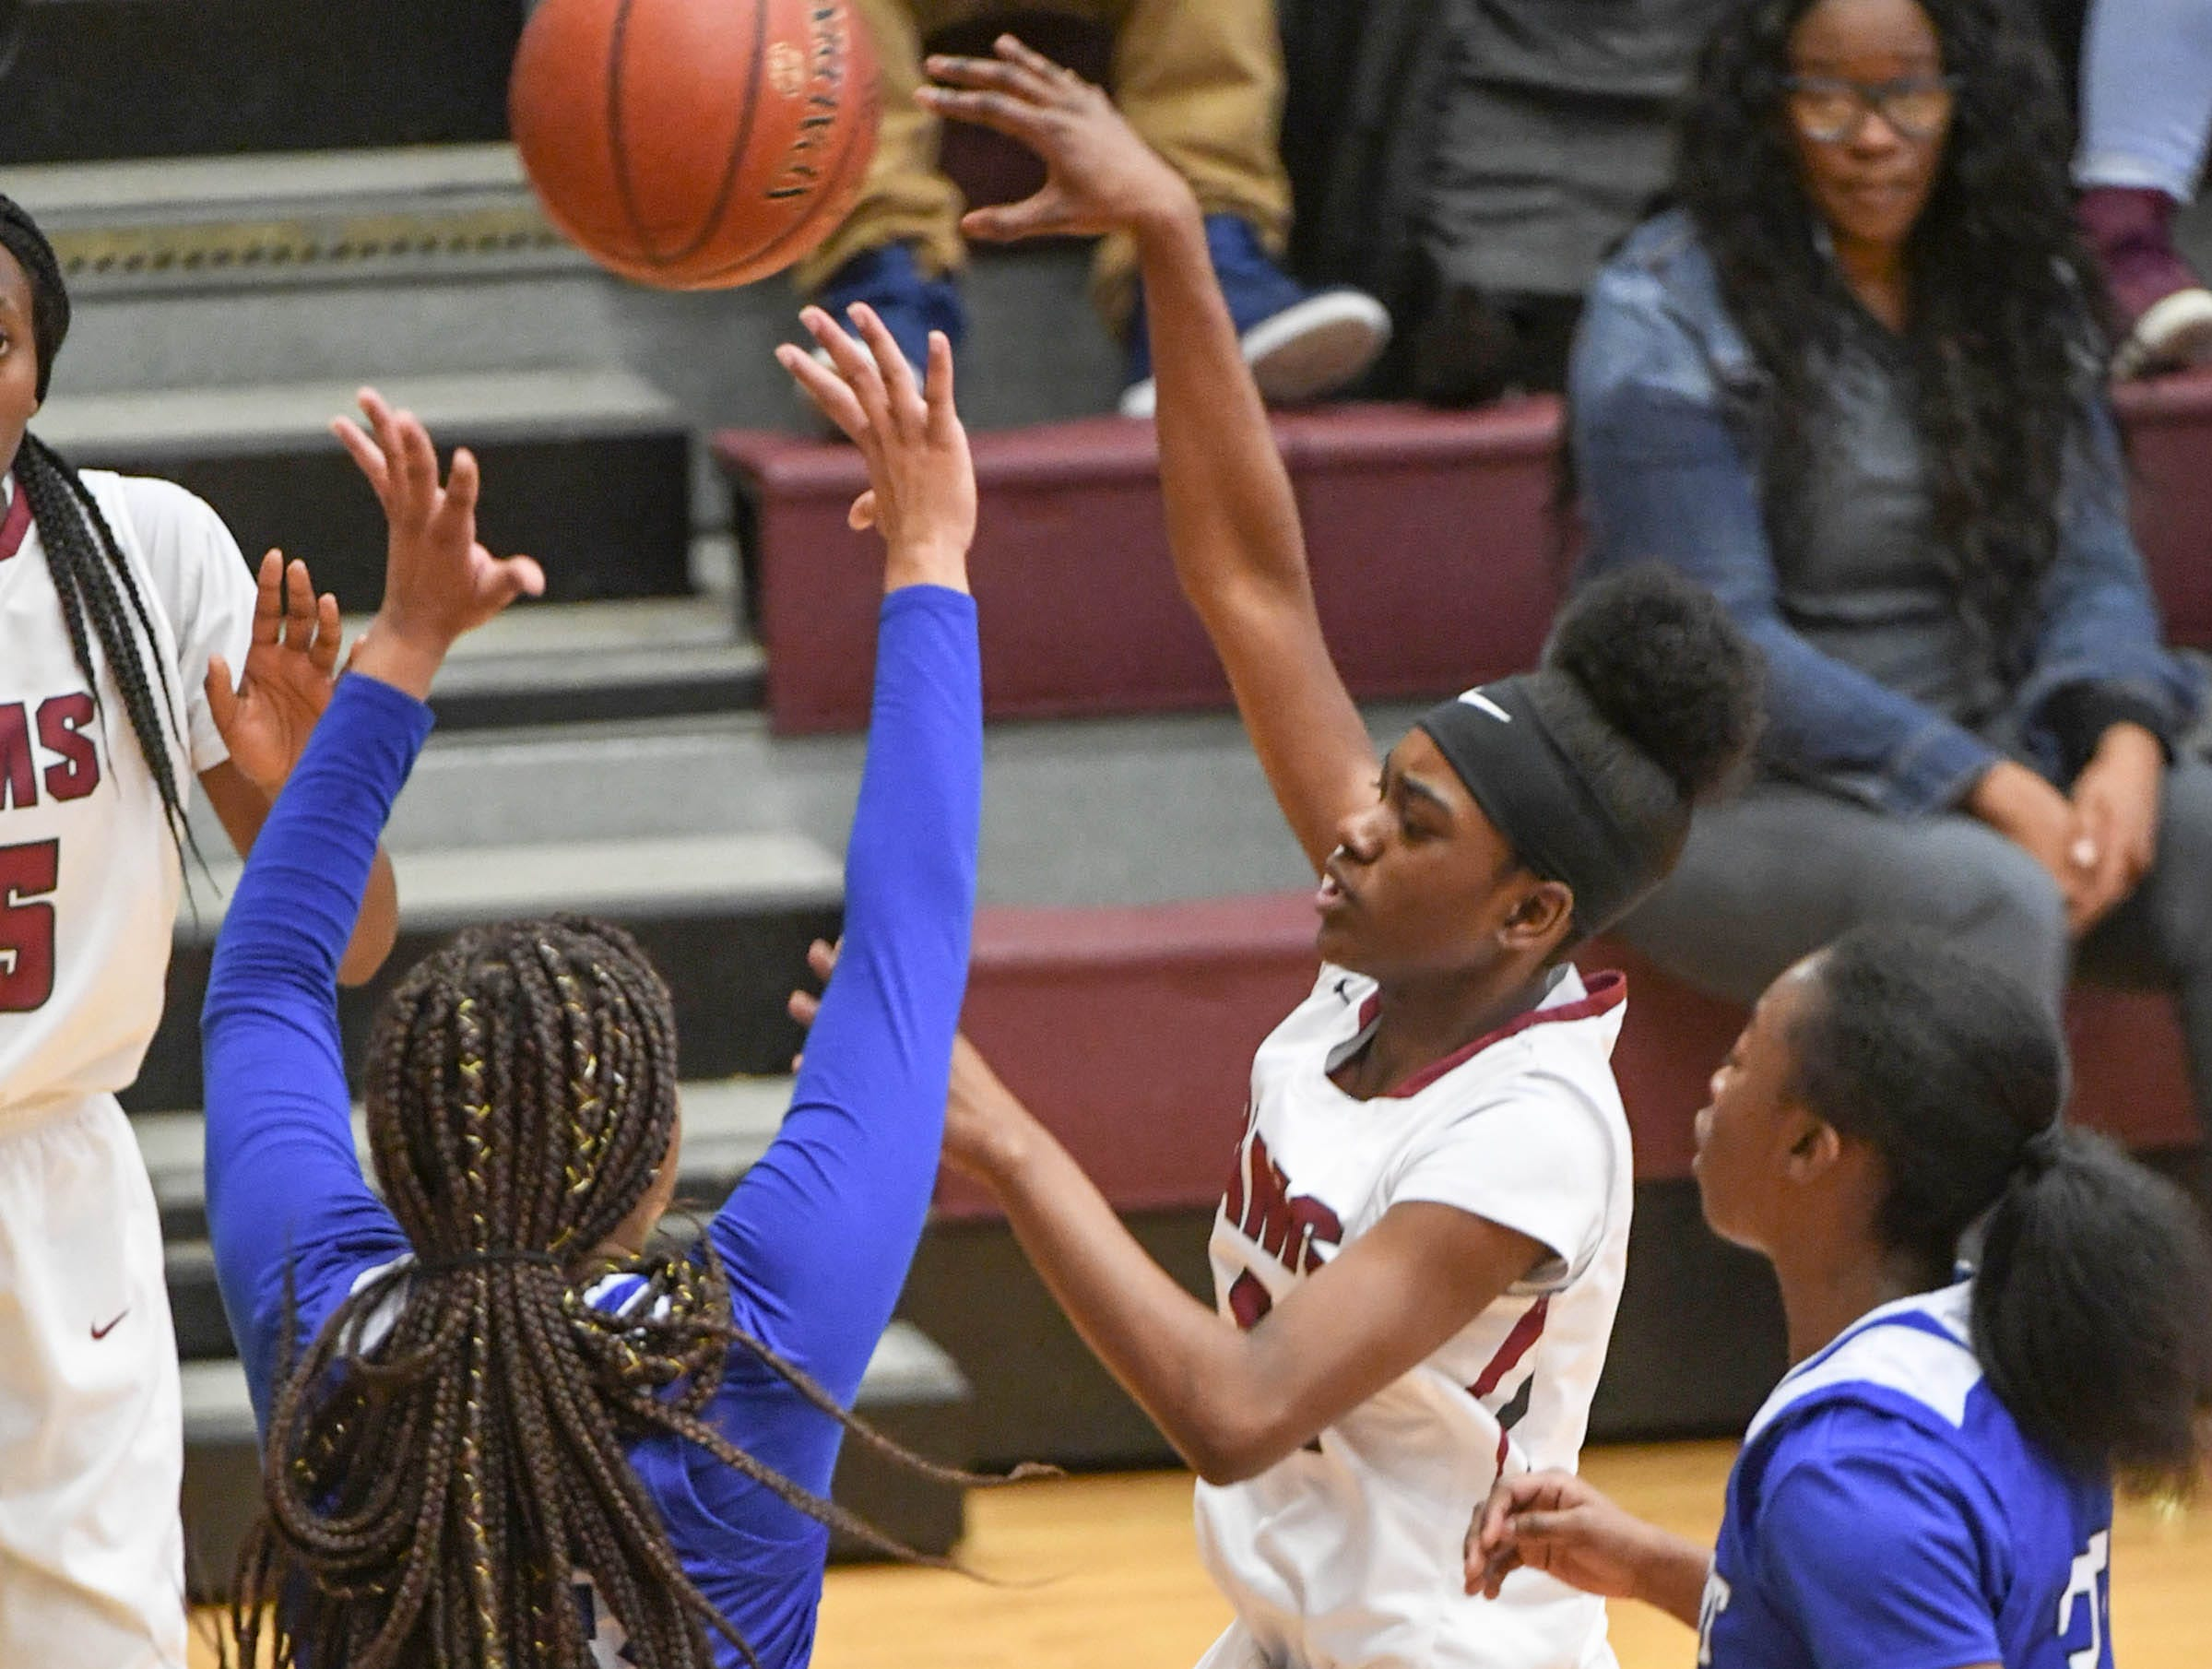 Westside freshman Aziyah Bell(4) passes the ball near Woodmont players during the first quarter at Westside High School in Anderson on Tuesday.